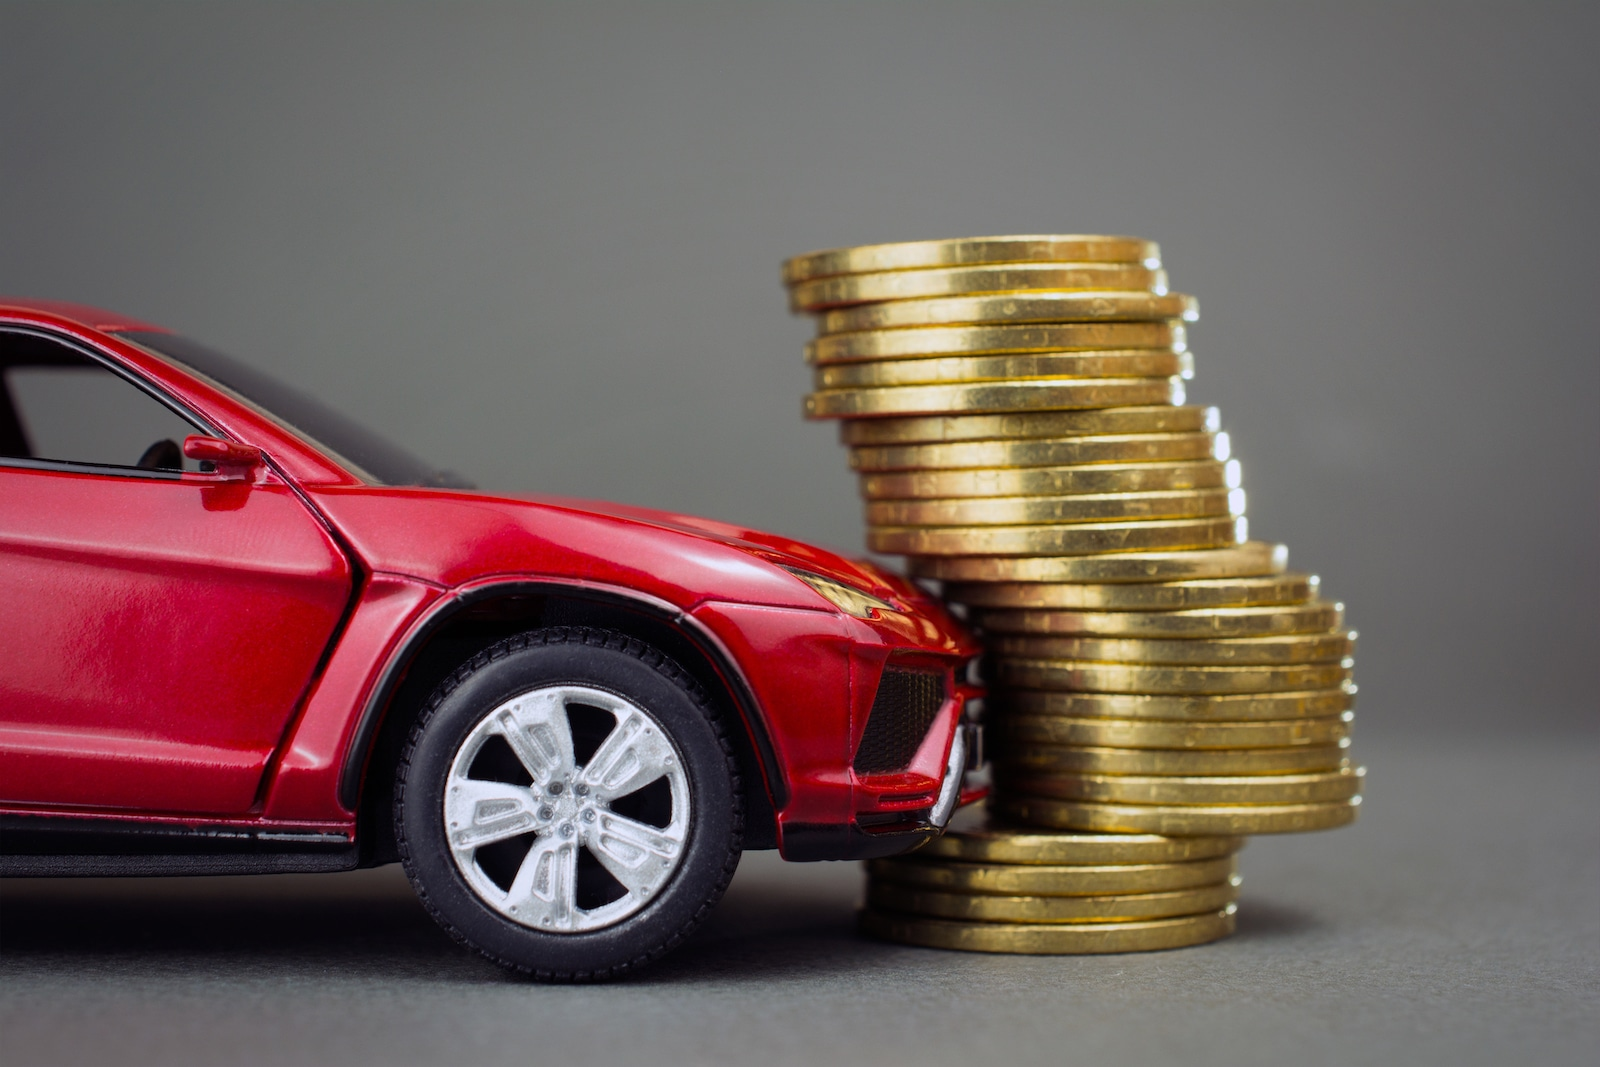 Cheap Car Insurance, No Deposit: Are You Eligible?